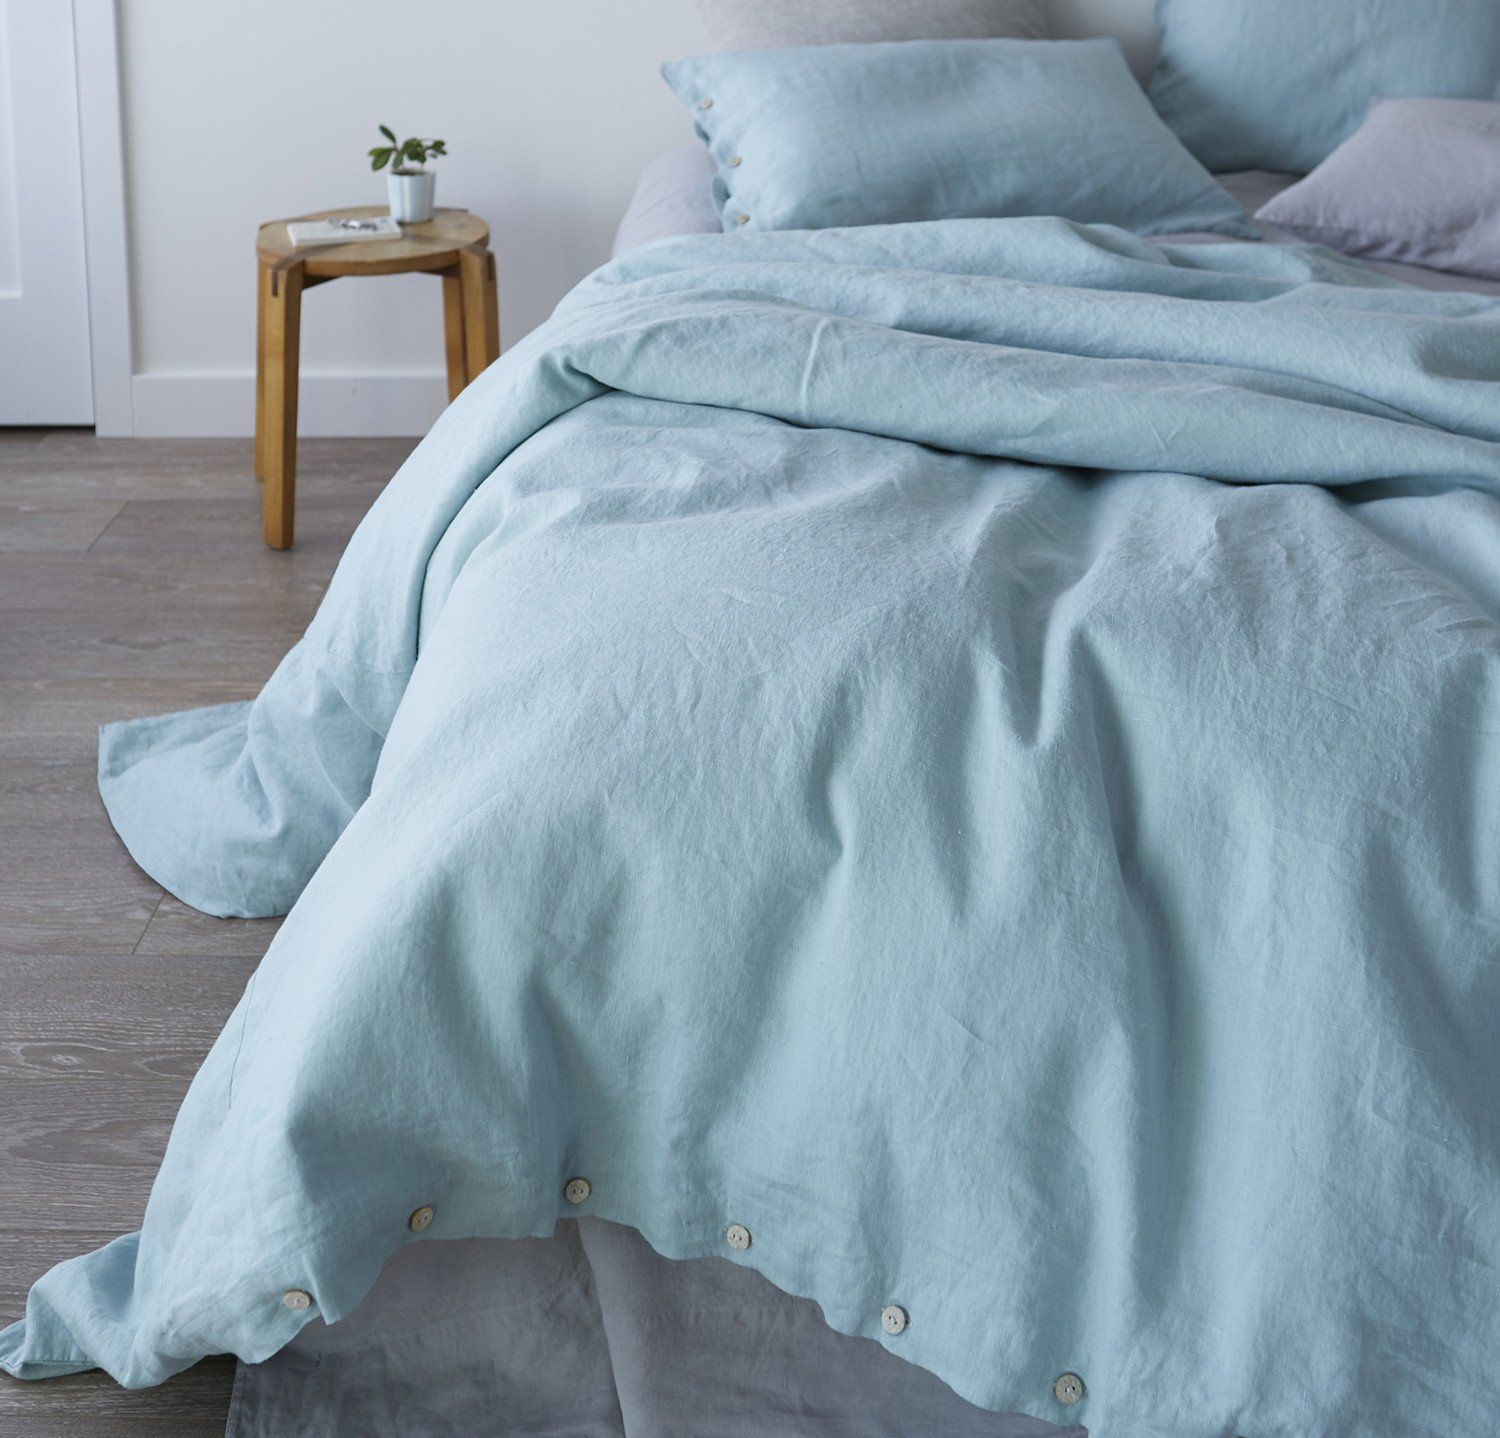 sets grey nicole hotel quilt image navy big queen size rty cover king comforter is cotton beautiful print covers reversible striped sham miller how set white of teal with comfortable closure black zipper duvets by duvet side lifetb porcelain full blue soft and stripes single